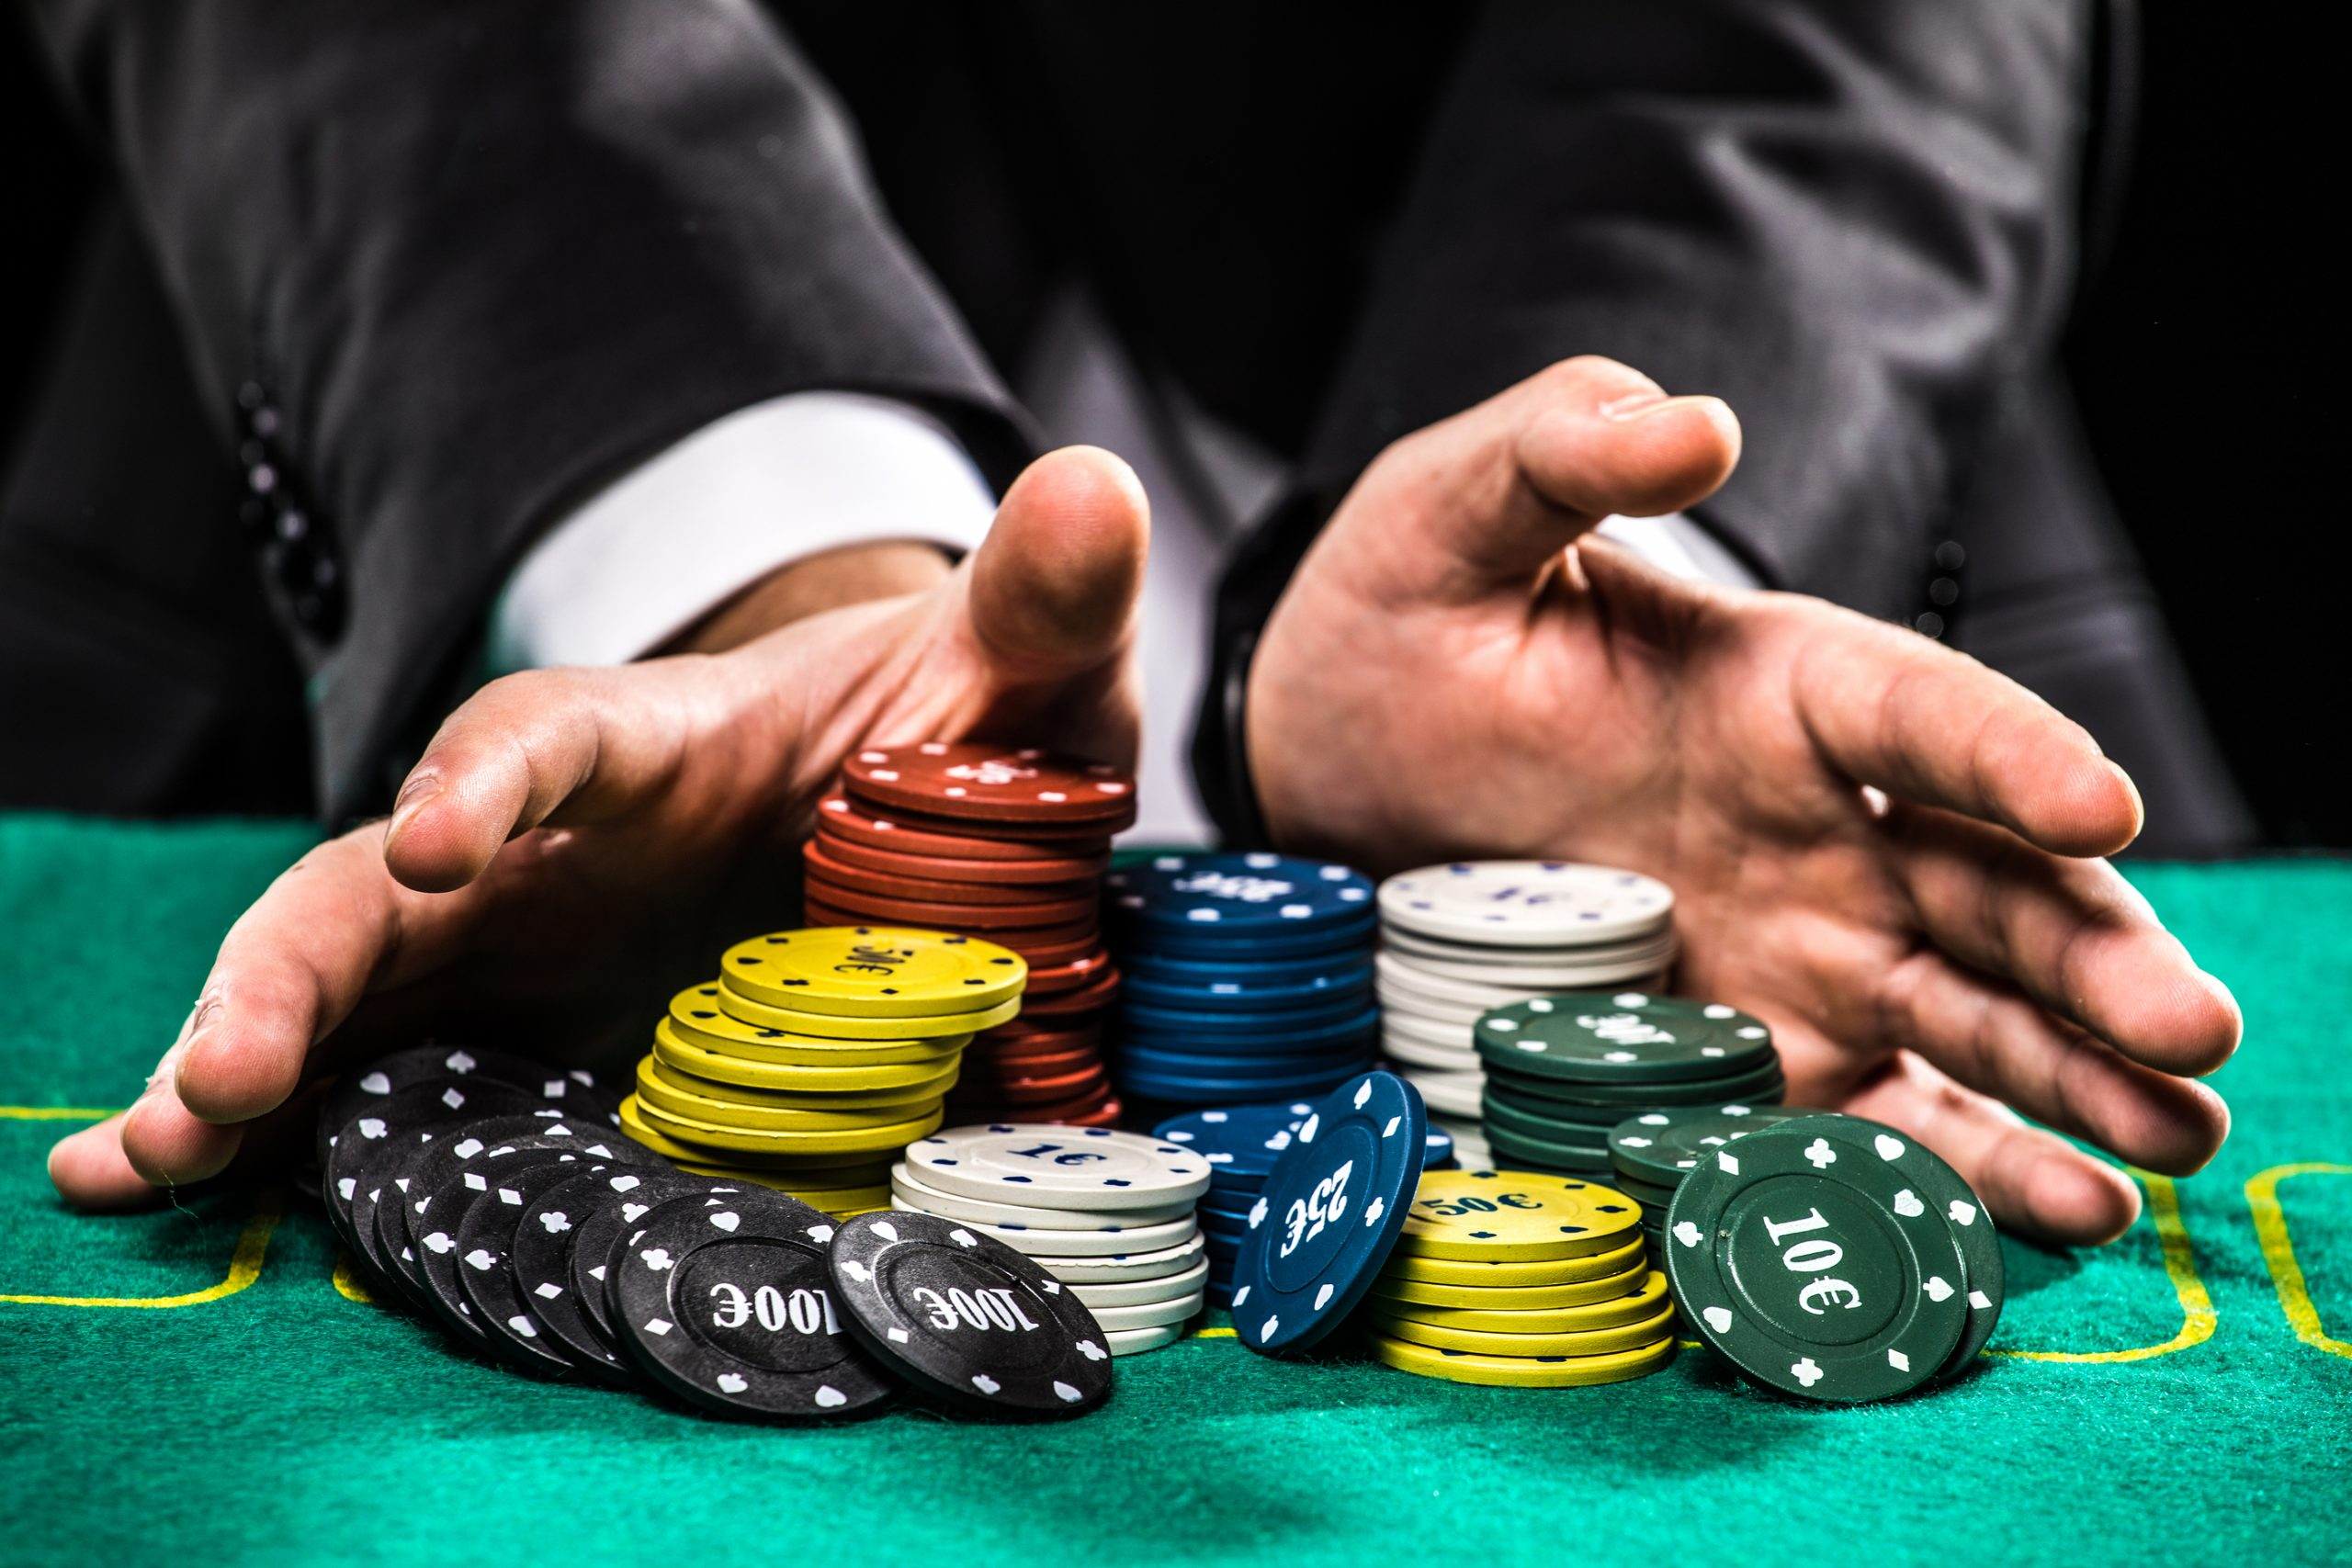 Play More Poker Online Games Now